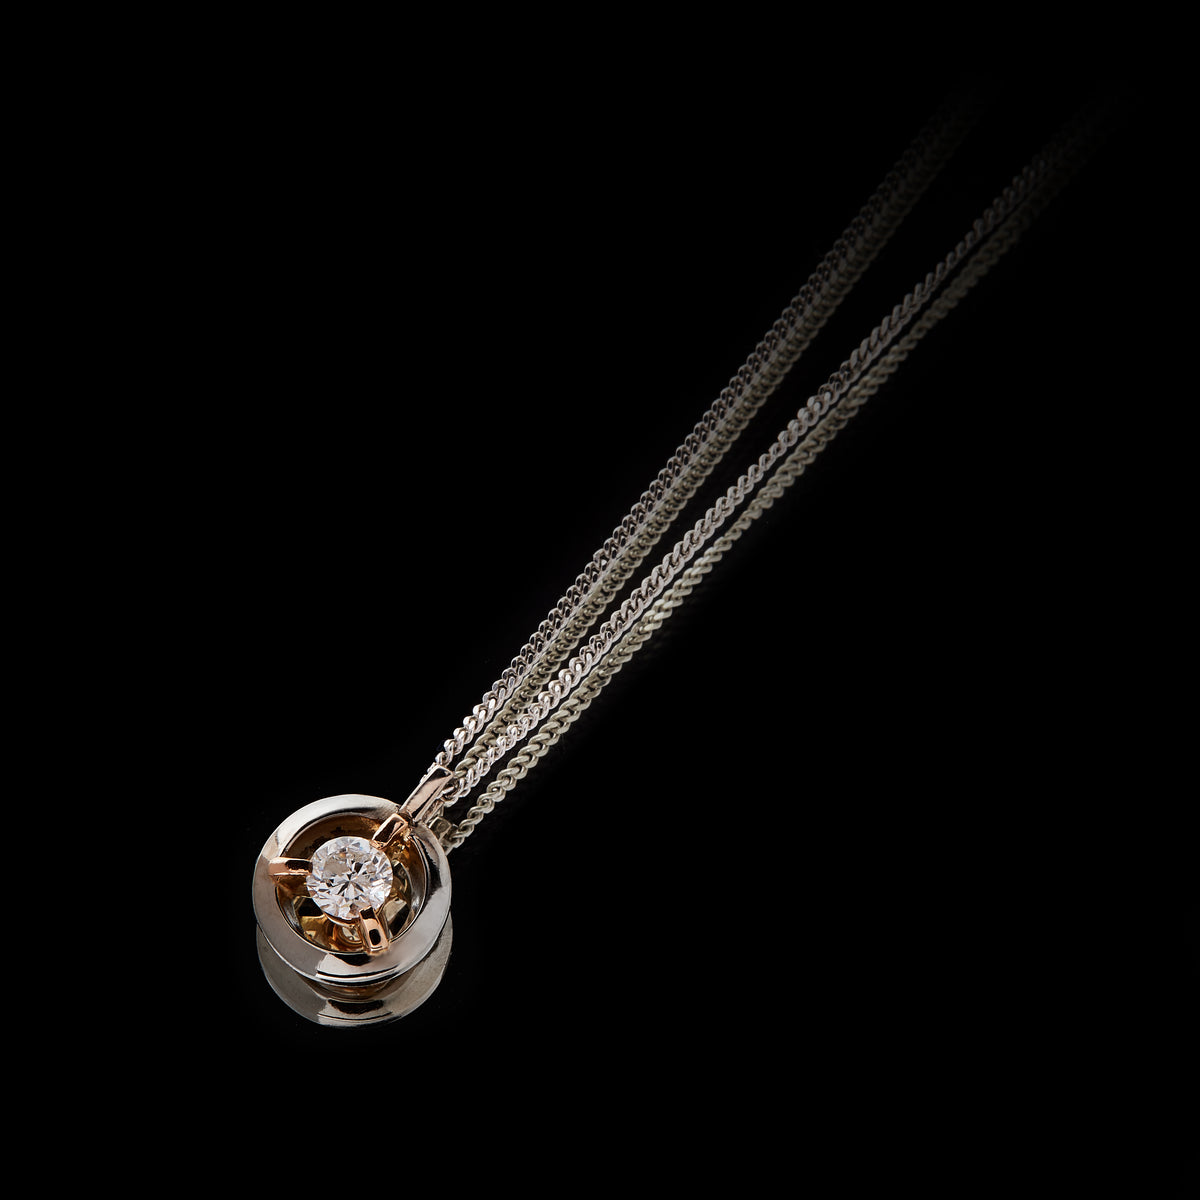 Guy and Max Orbit Three Claw Loop Pendant with 0.22 carat Round Brilliant Cut Diamond suspended in the centre, three quarter view